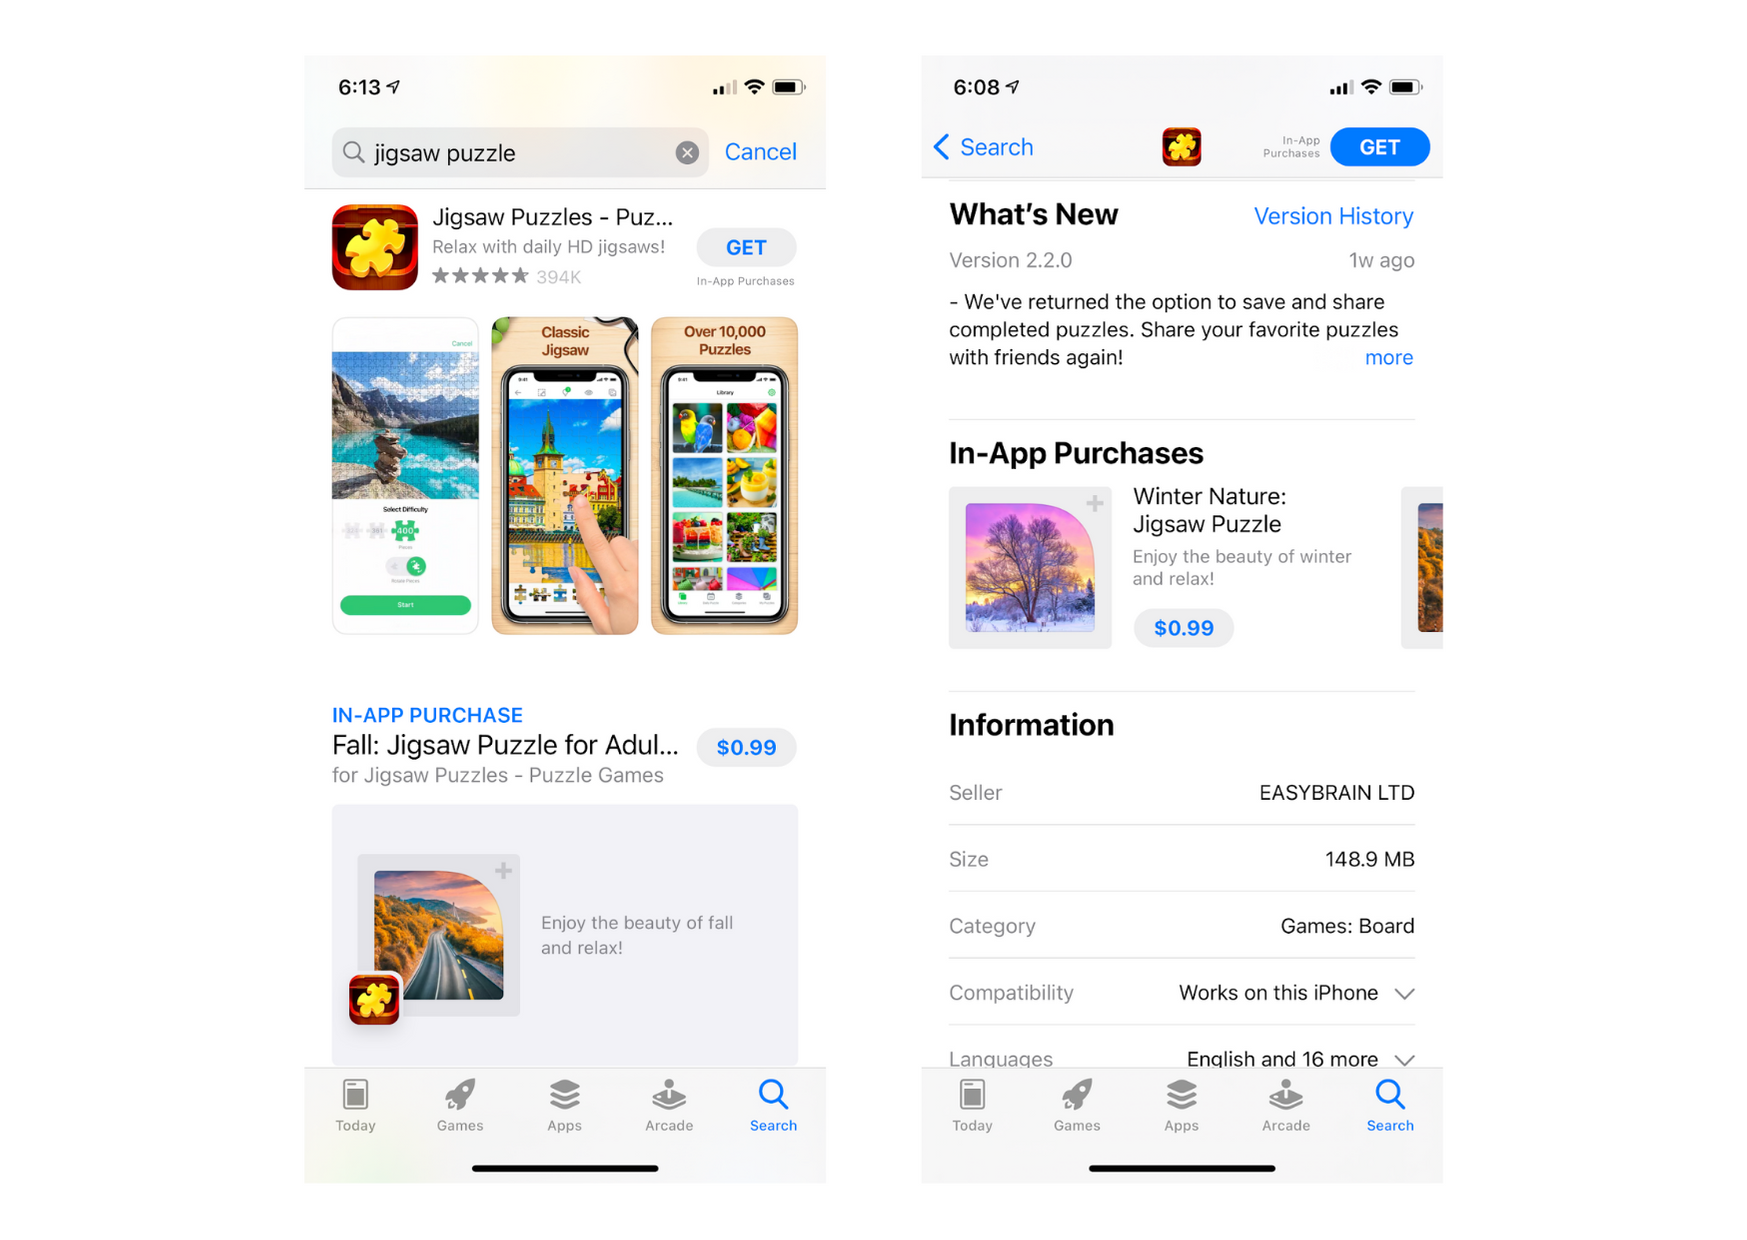 Example of how in-app purchases appear in the search results and on the app page in the Apple App Store